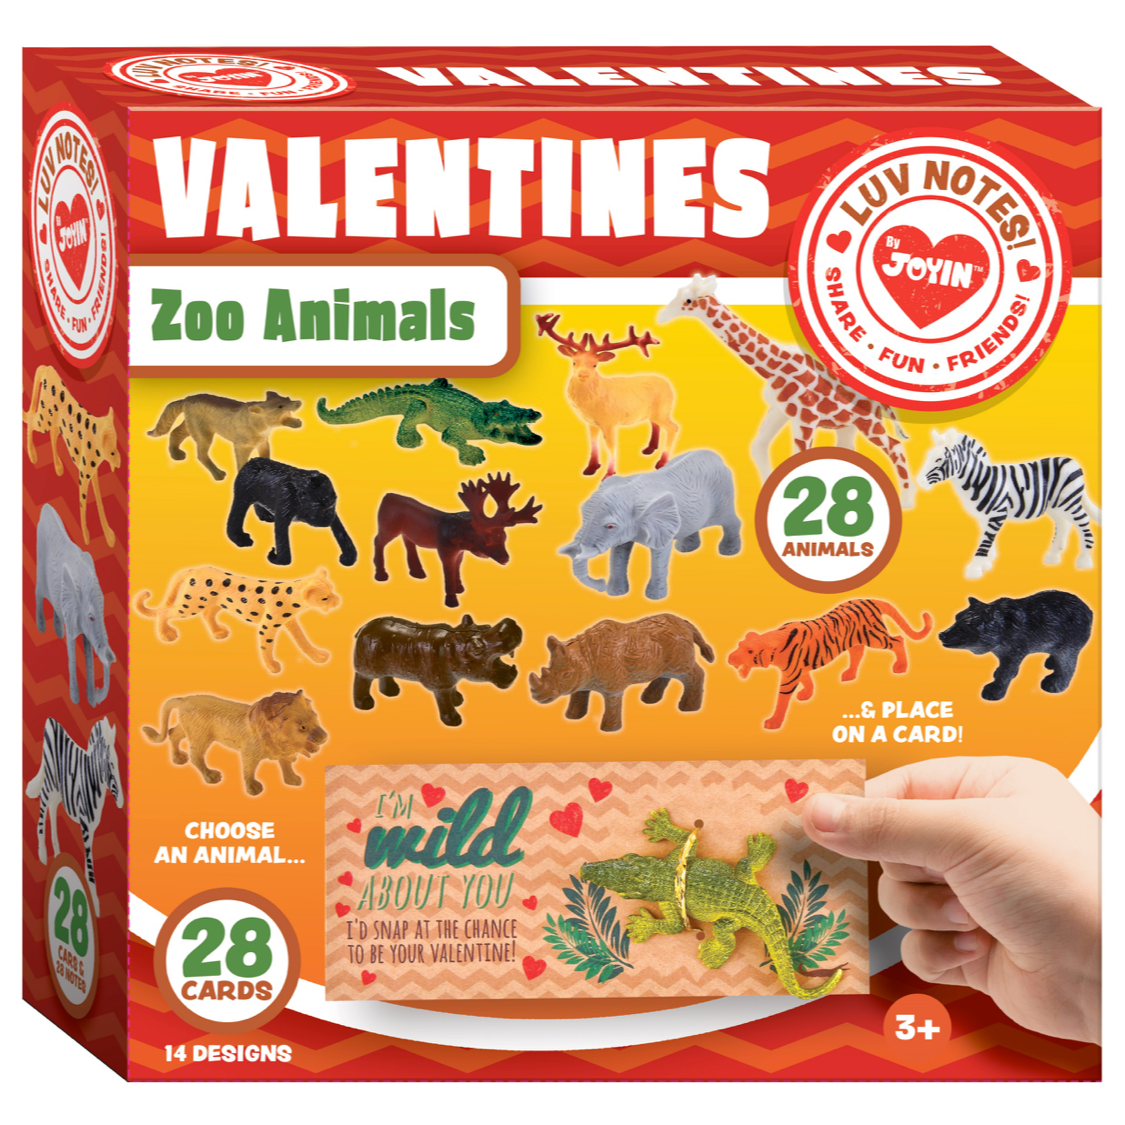 Valentines Day Gifts Cards for Kids with Zoo Animals, 28-Count